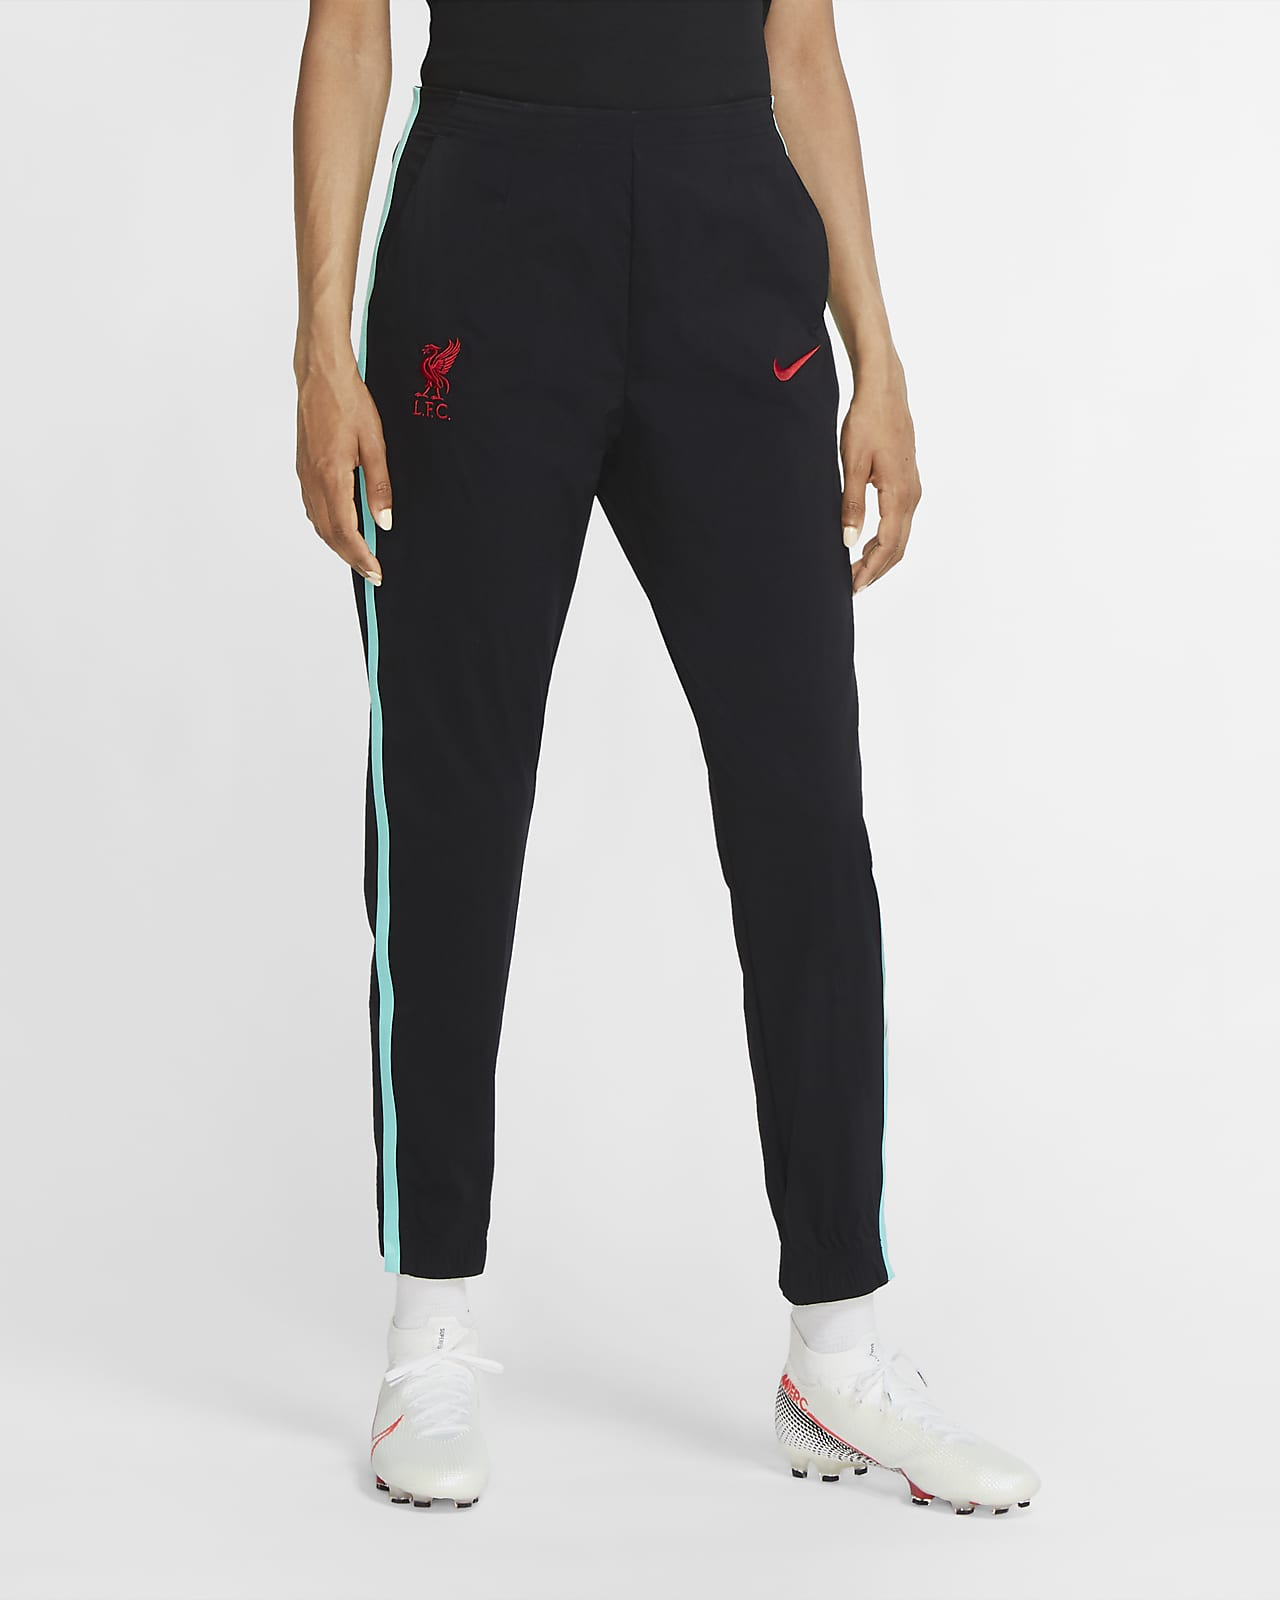 Liverpool FC Women's Woven Soccer Pants